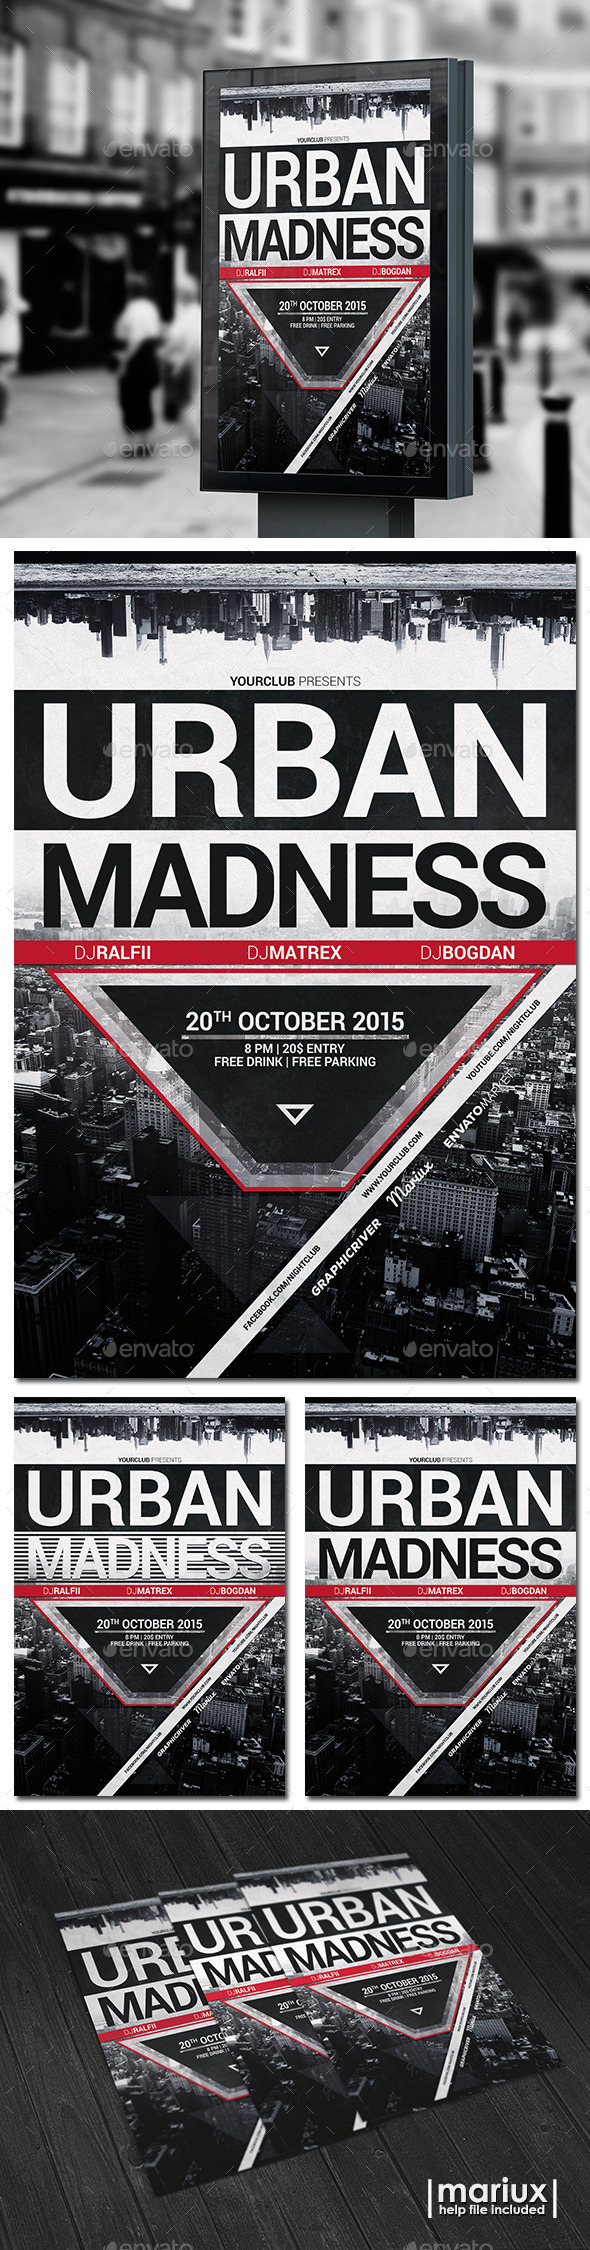 Urban Madness Party Flyer - Clubs & Parties Events